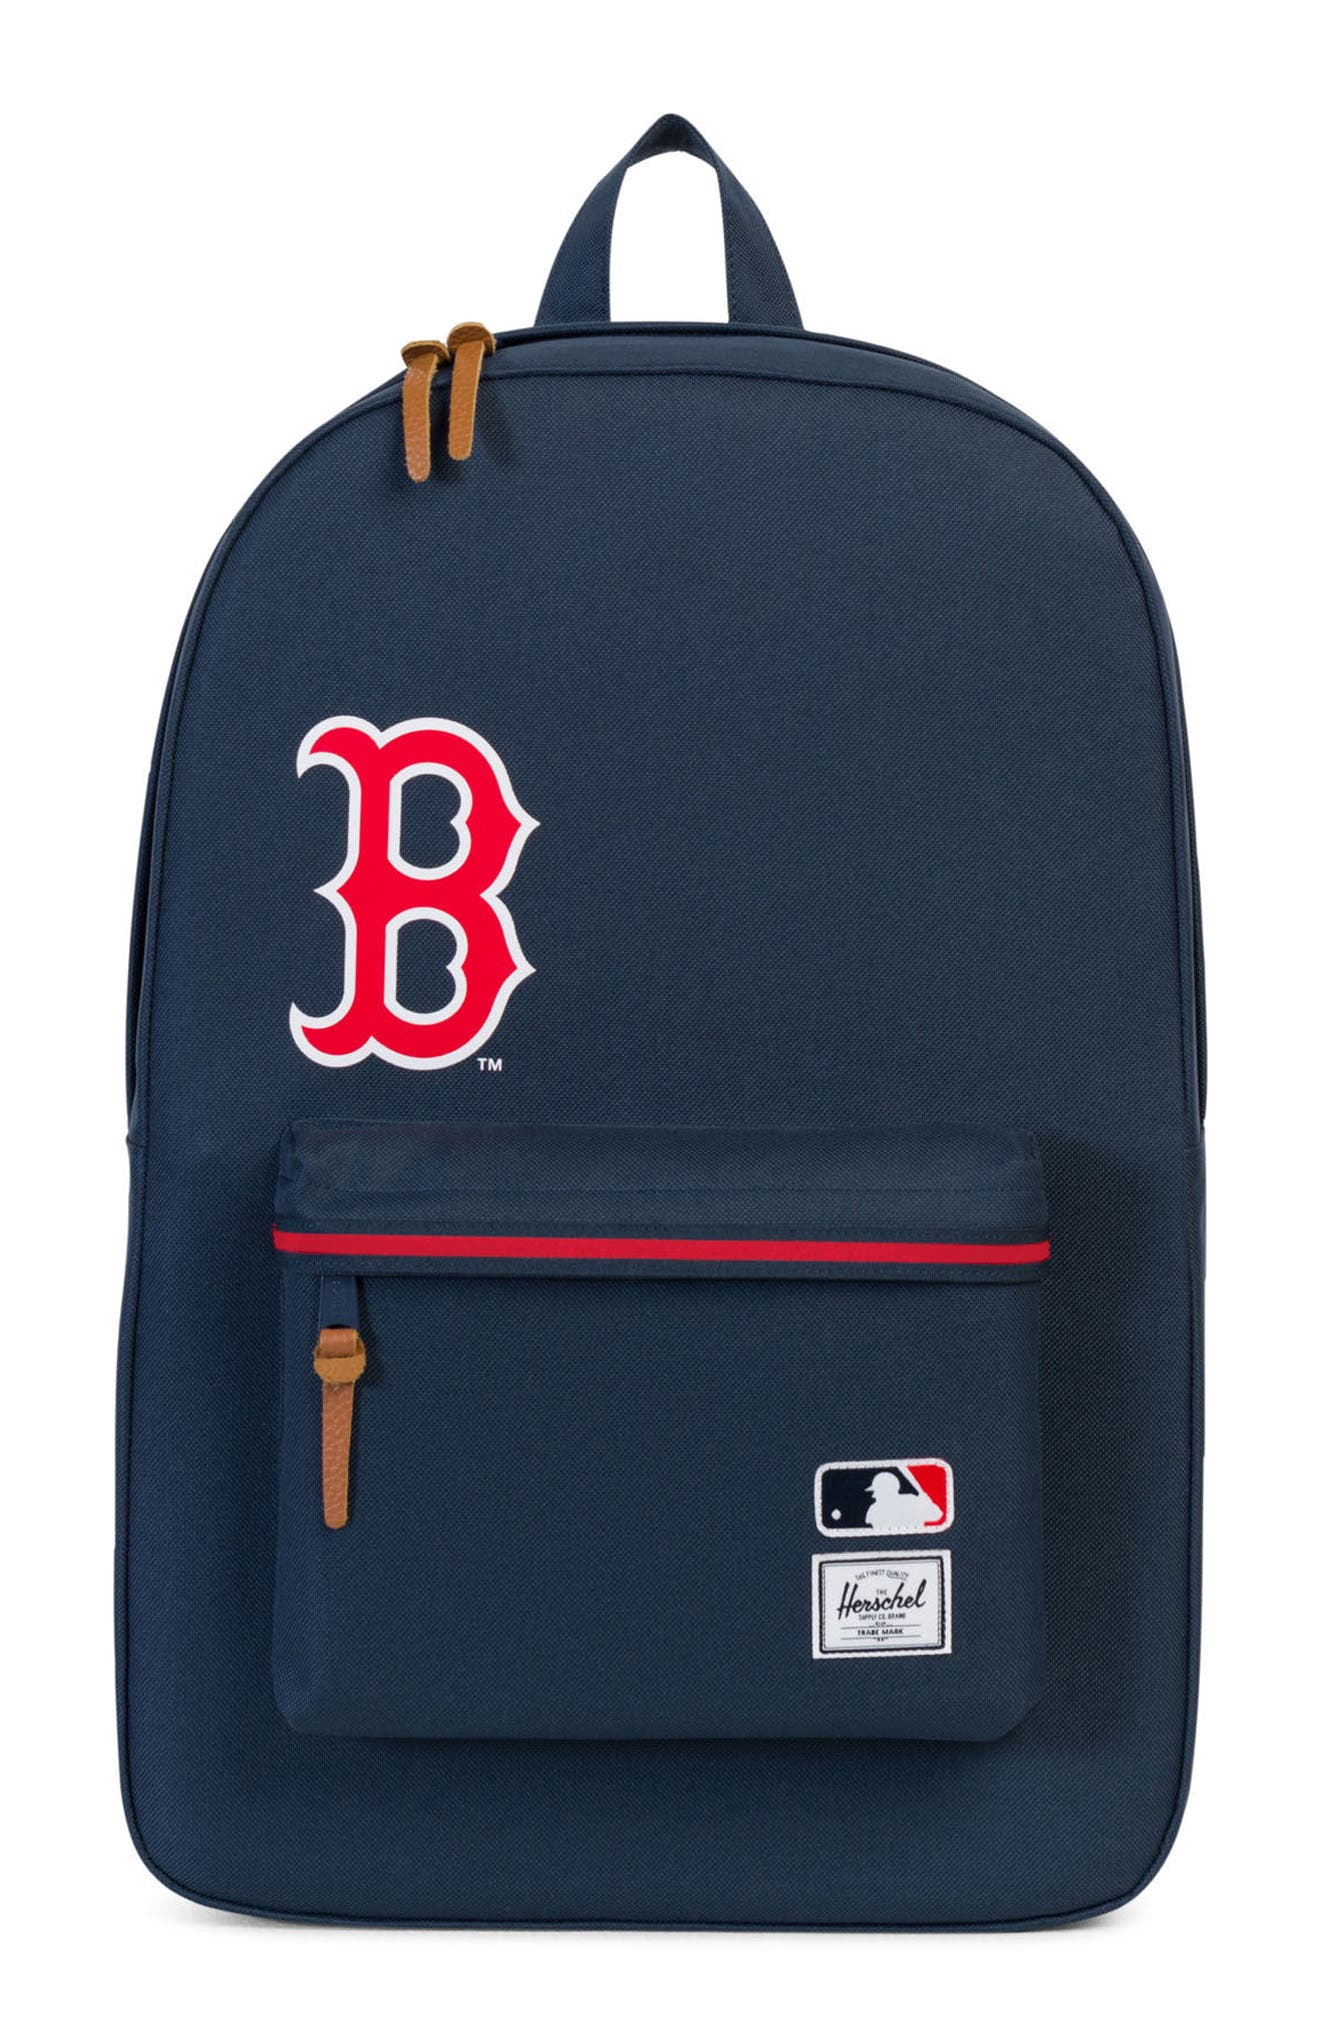 Herschel Supply Co. Heritage Boston Red Sox Backpack